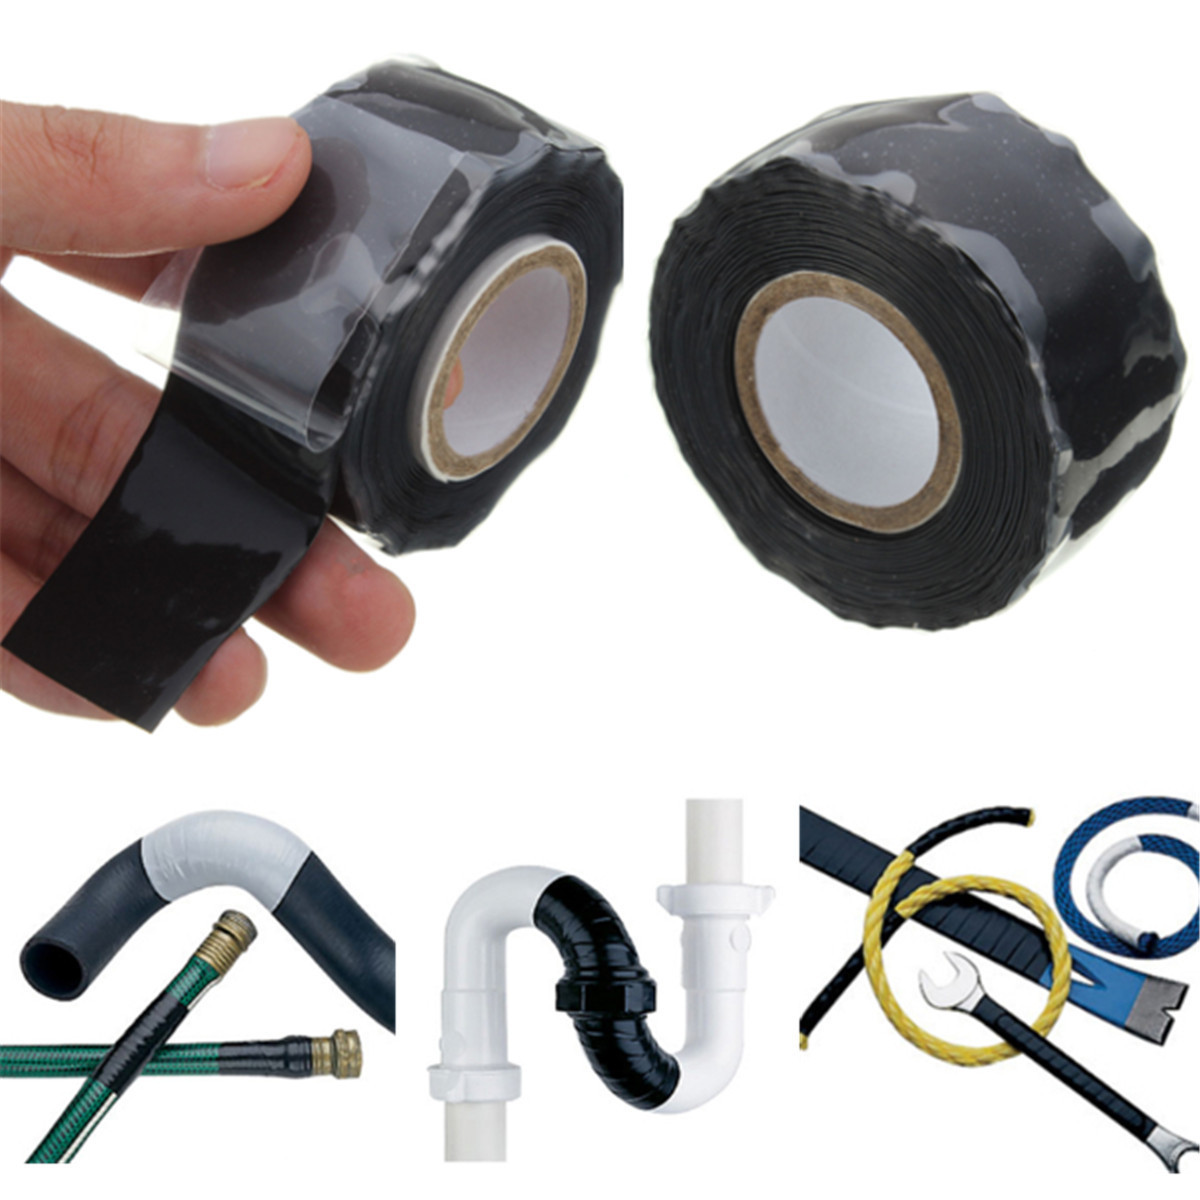 25-150cm-300cm-multi-purpose-self-adhesive-strong-black-rubber-silicone-repair-waterproof-bonding-tape-rescue-self-fusing-wire